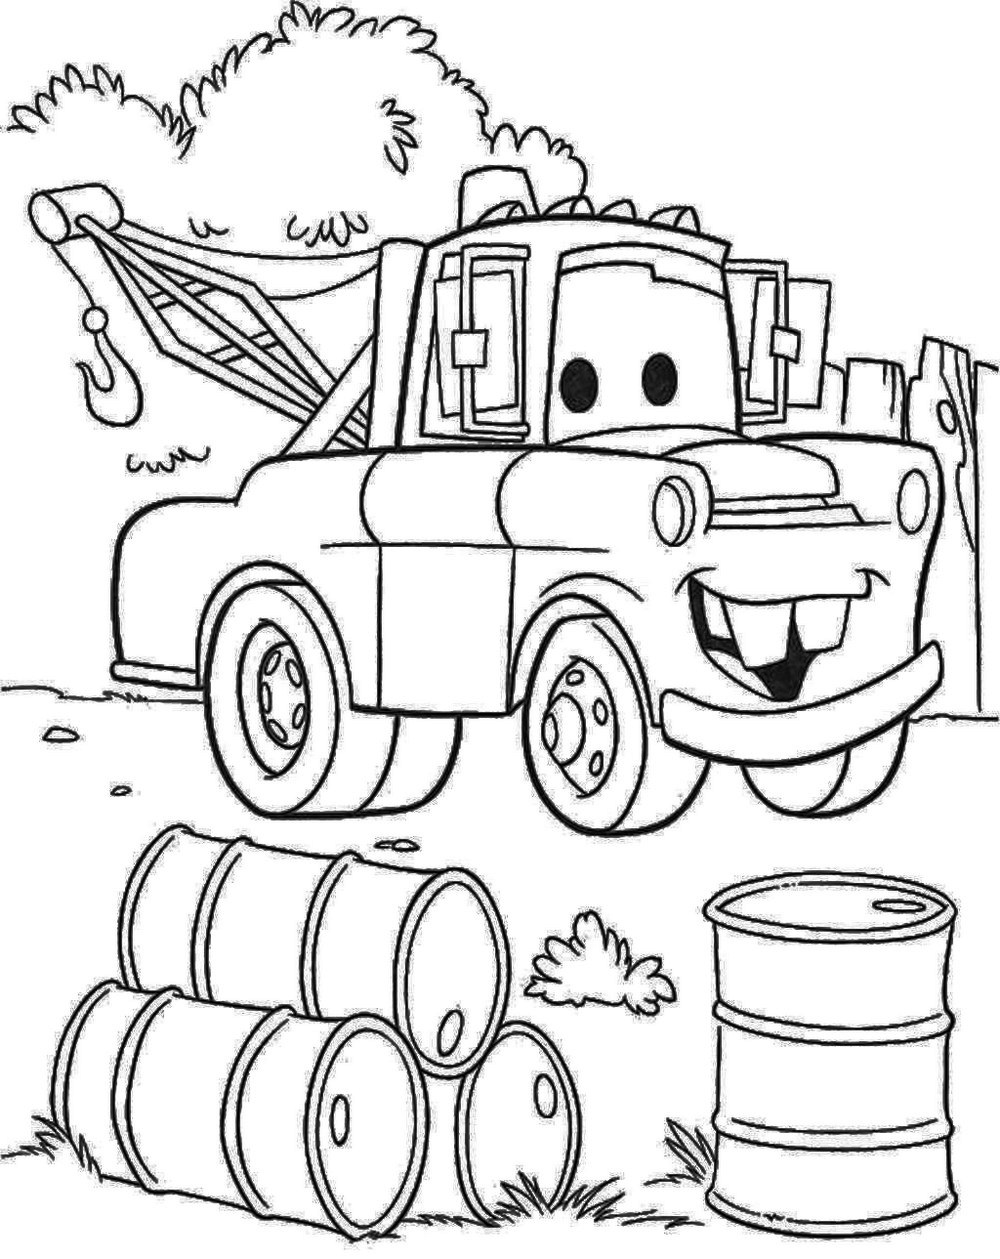 Mater Colouring Pages To Print